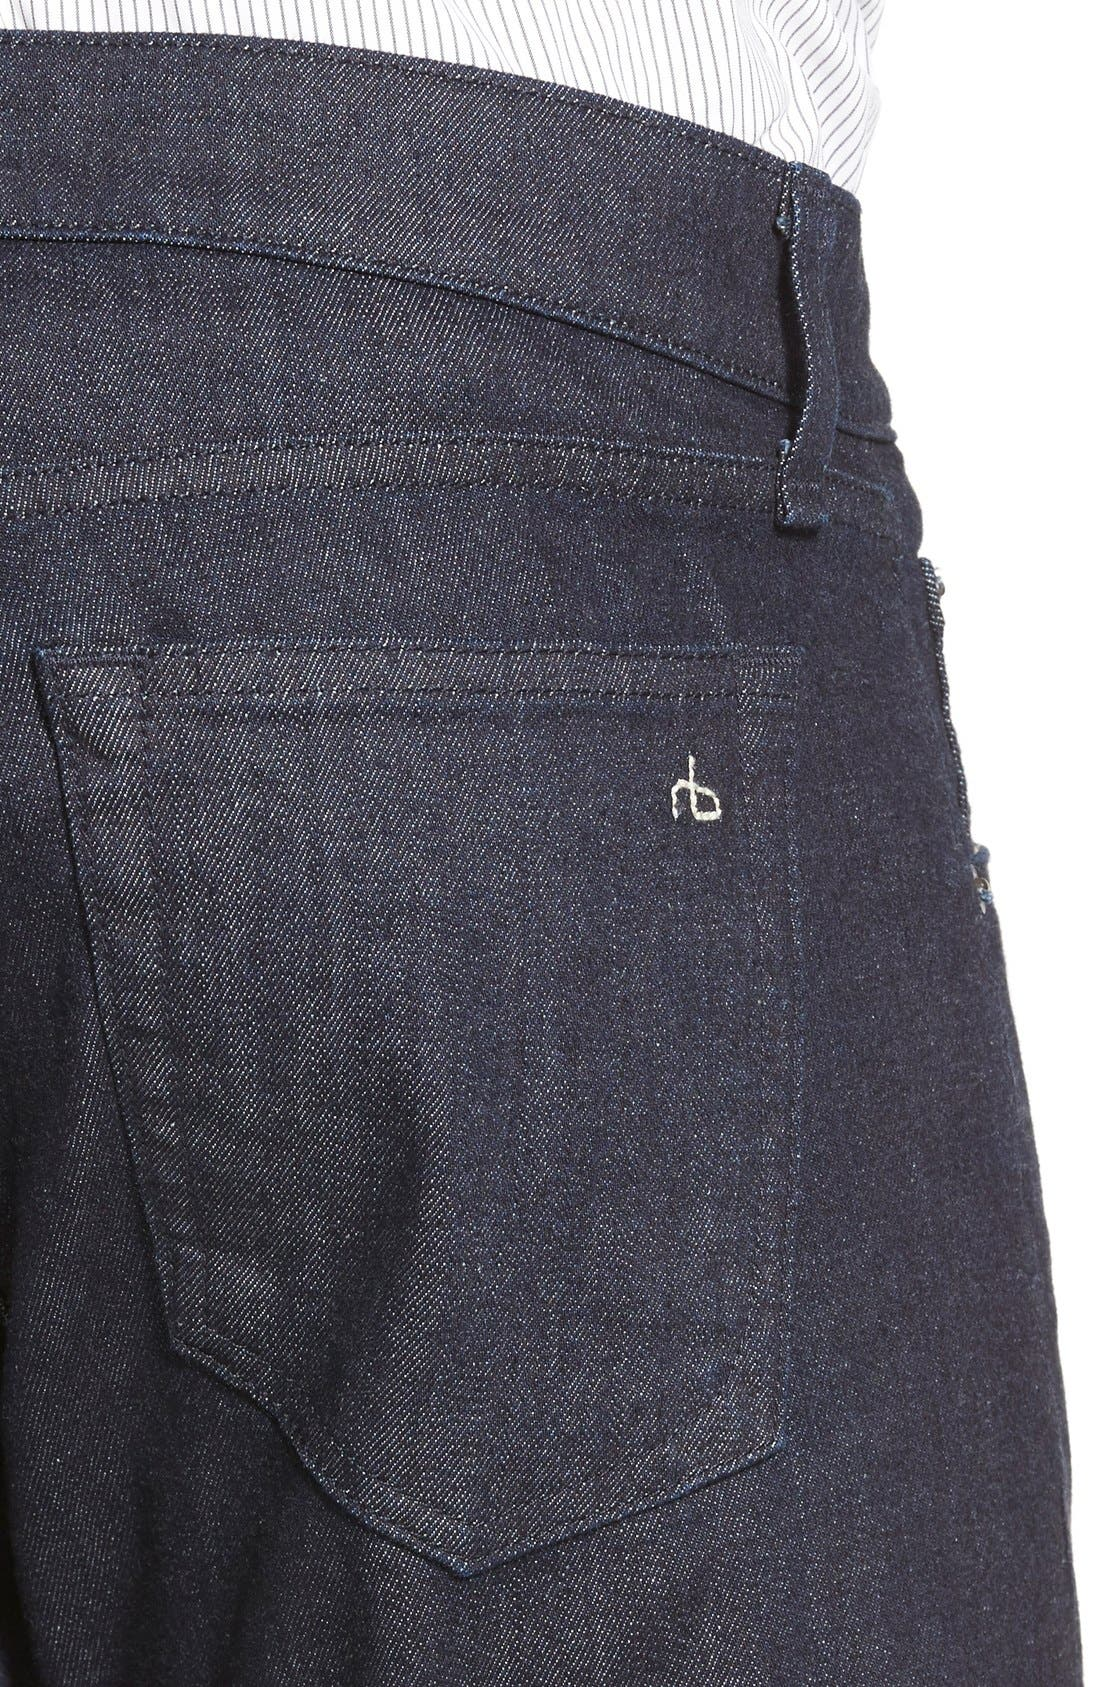 Standard Issue Fit 2 Slim Fit Jeans,                             Alternate thumbnail 5, color,                             TONAL RINSE